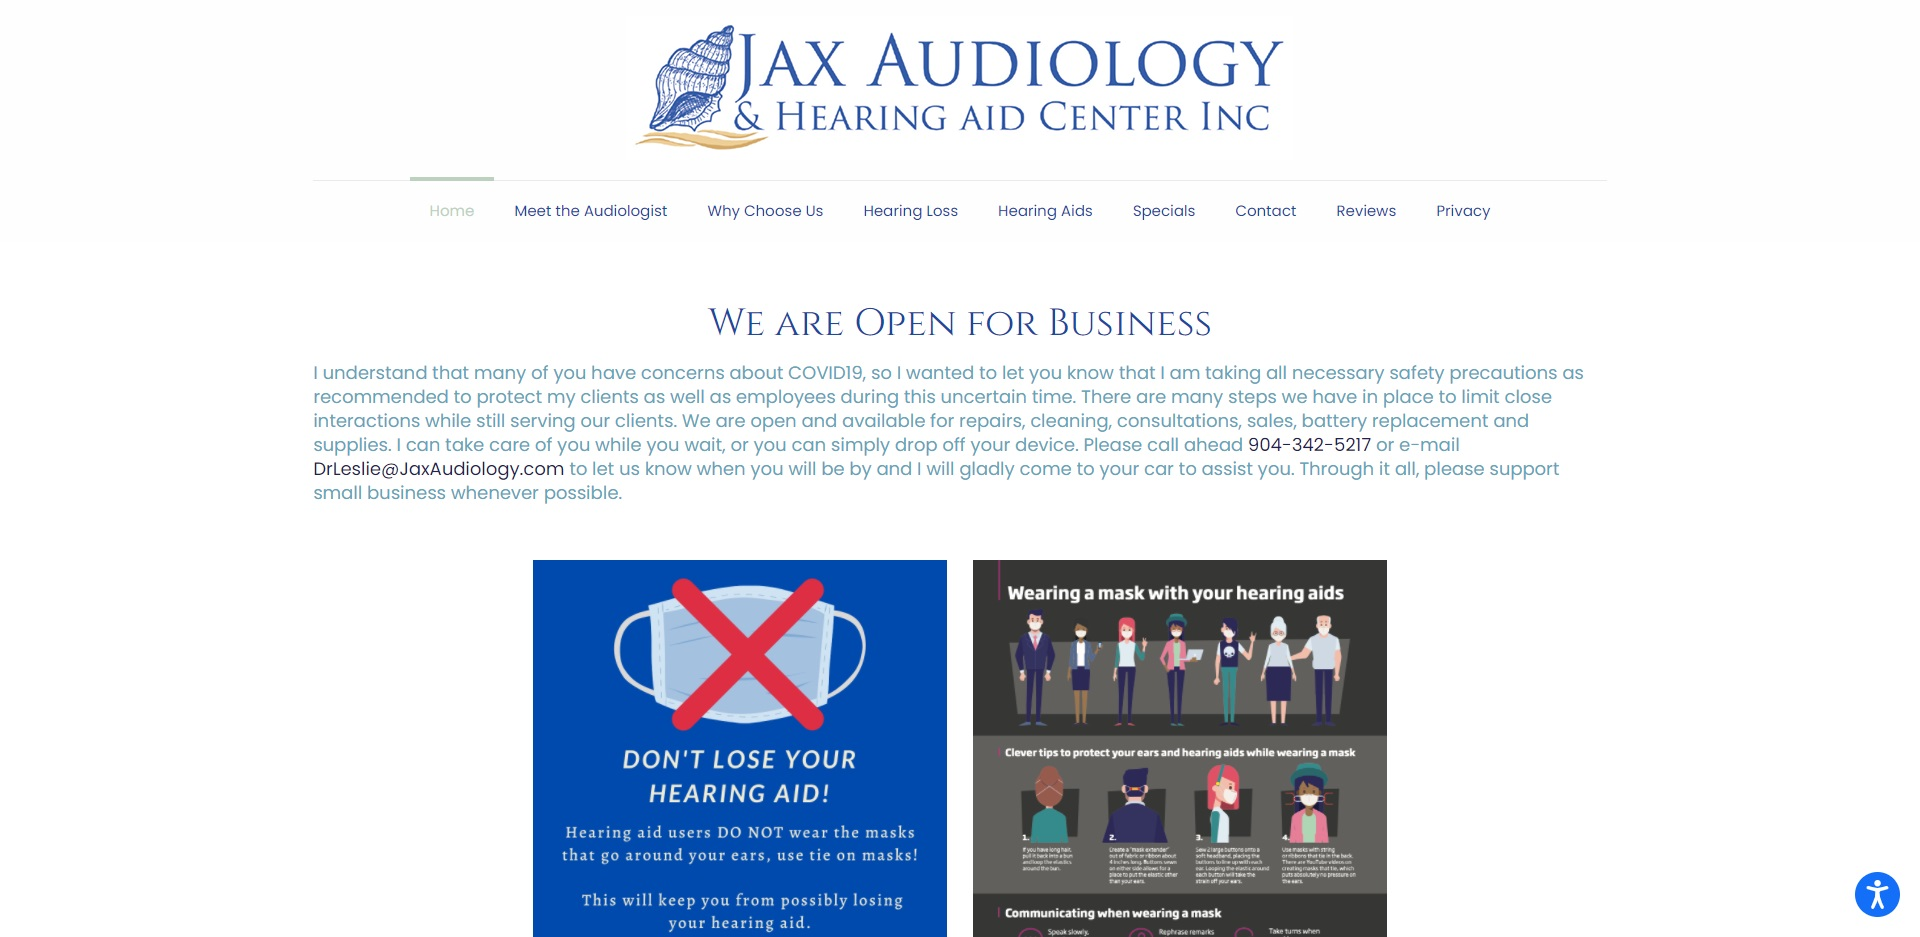 5 Best Audiologists in Jacksonville